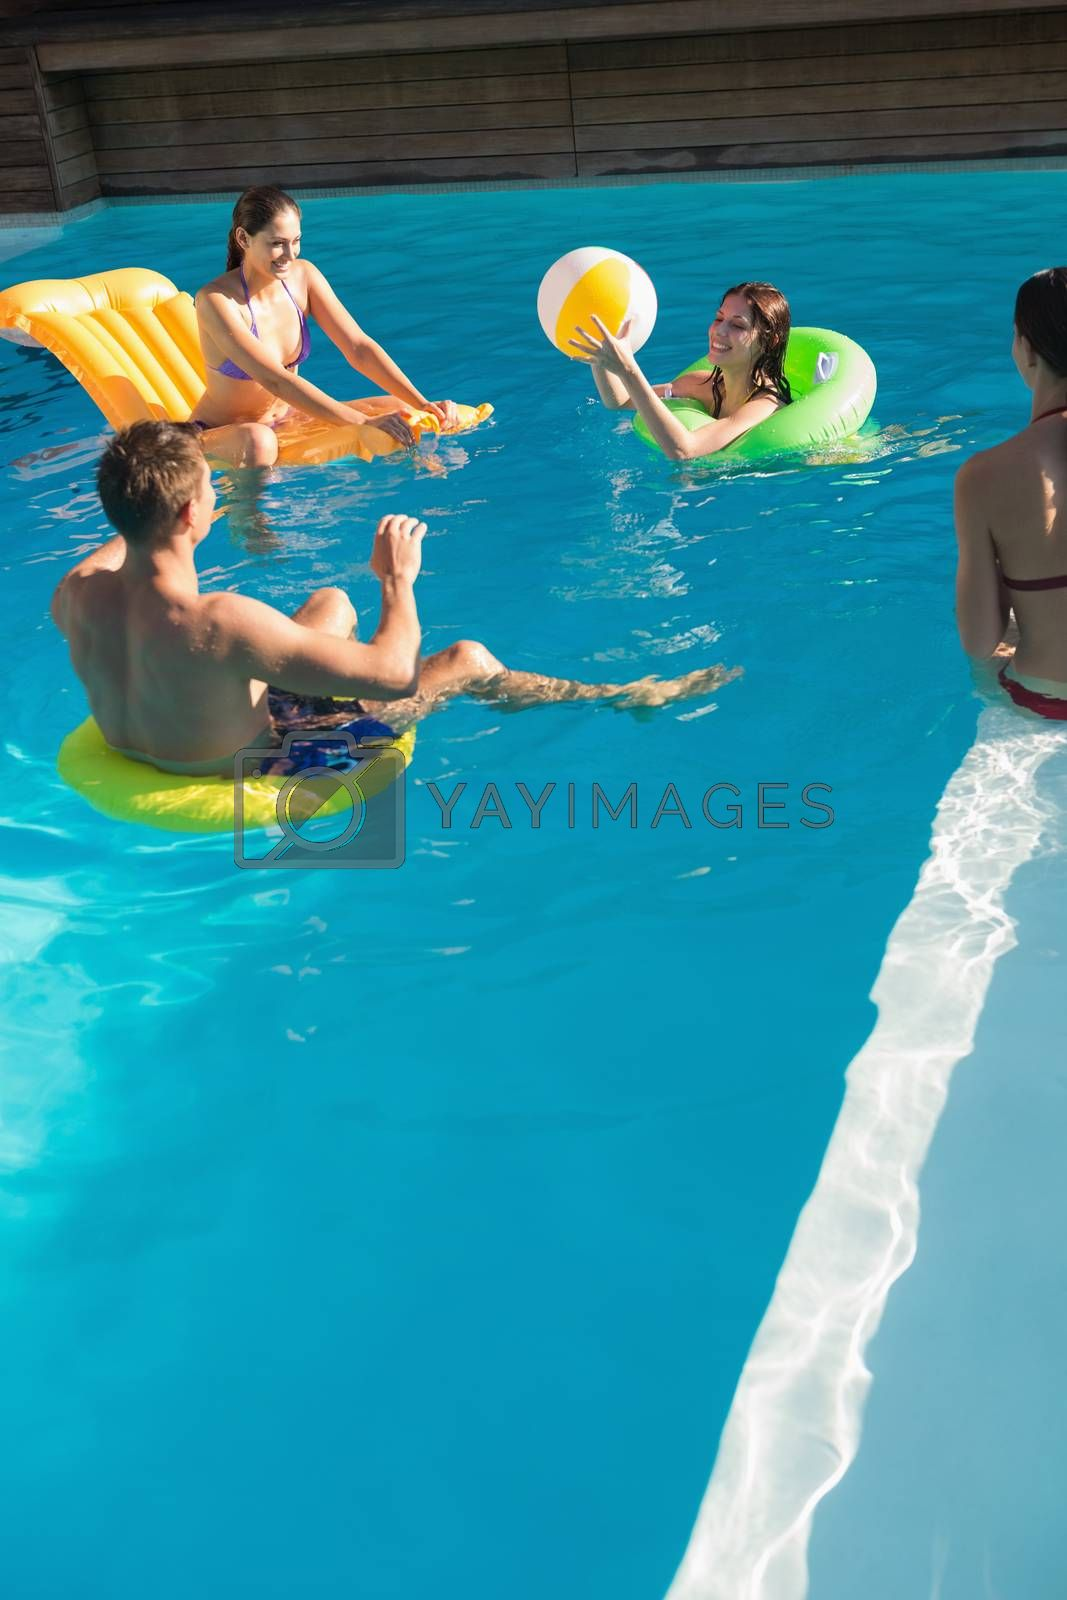 Cheerful young people playing with ball in swimming pool